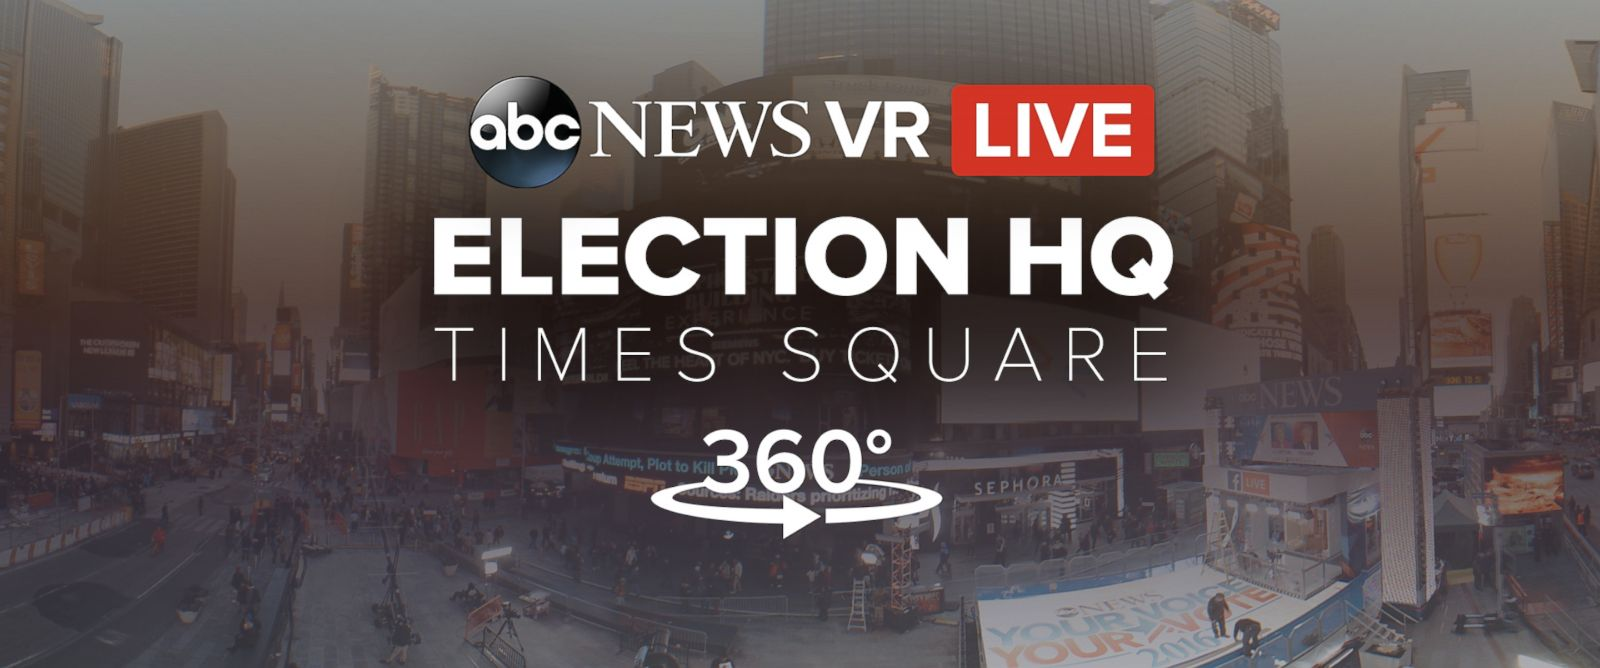 PHOTO: ABC News VR transports you to Times Square on election night for a live 360/vr experience.